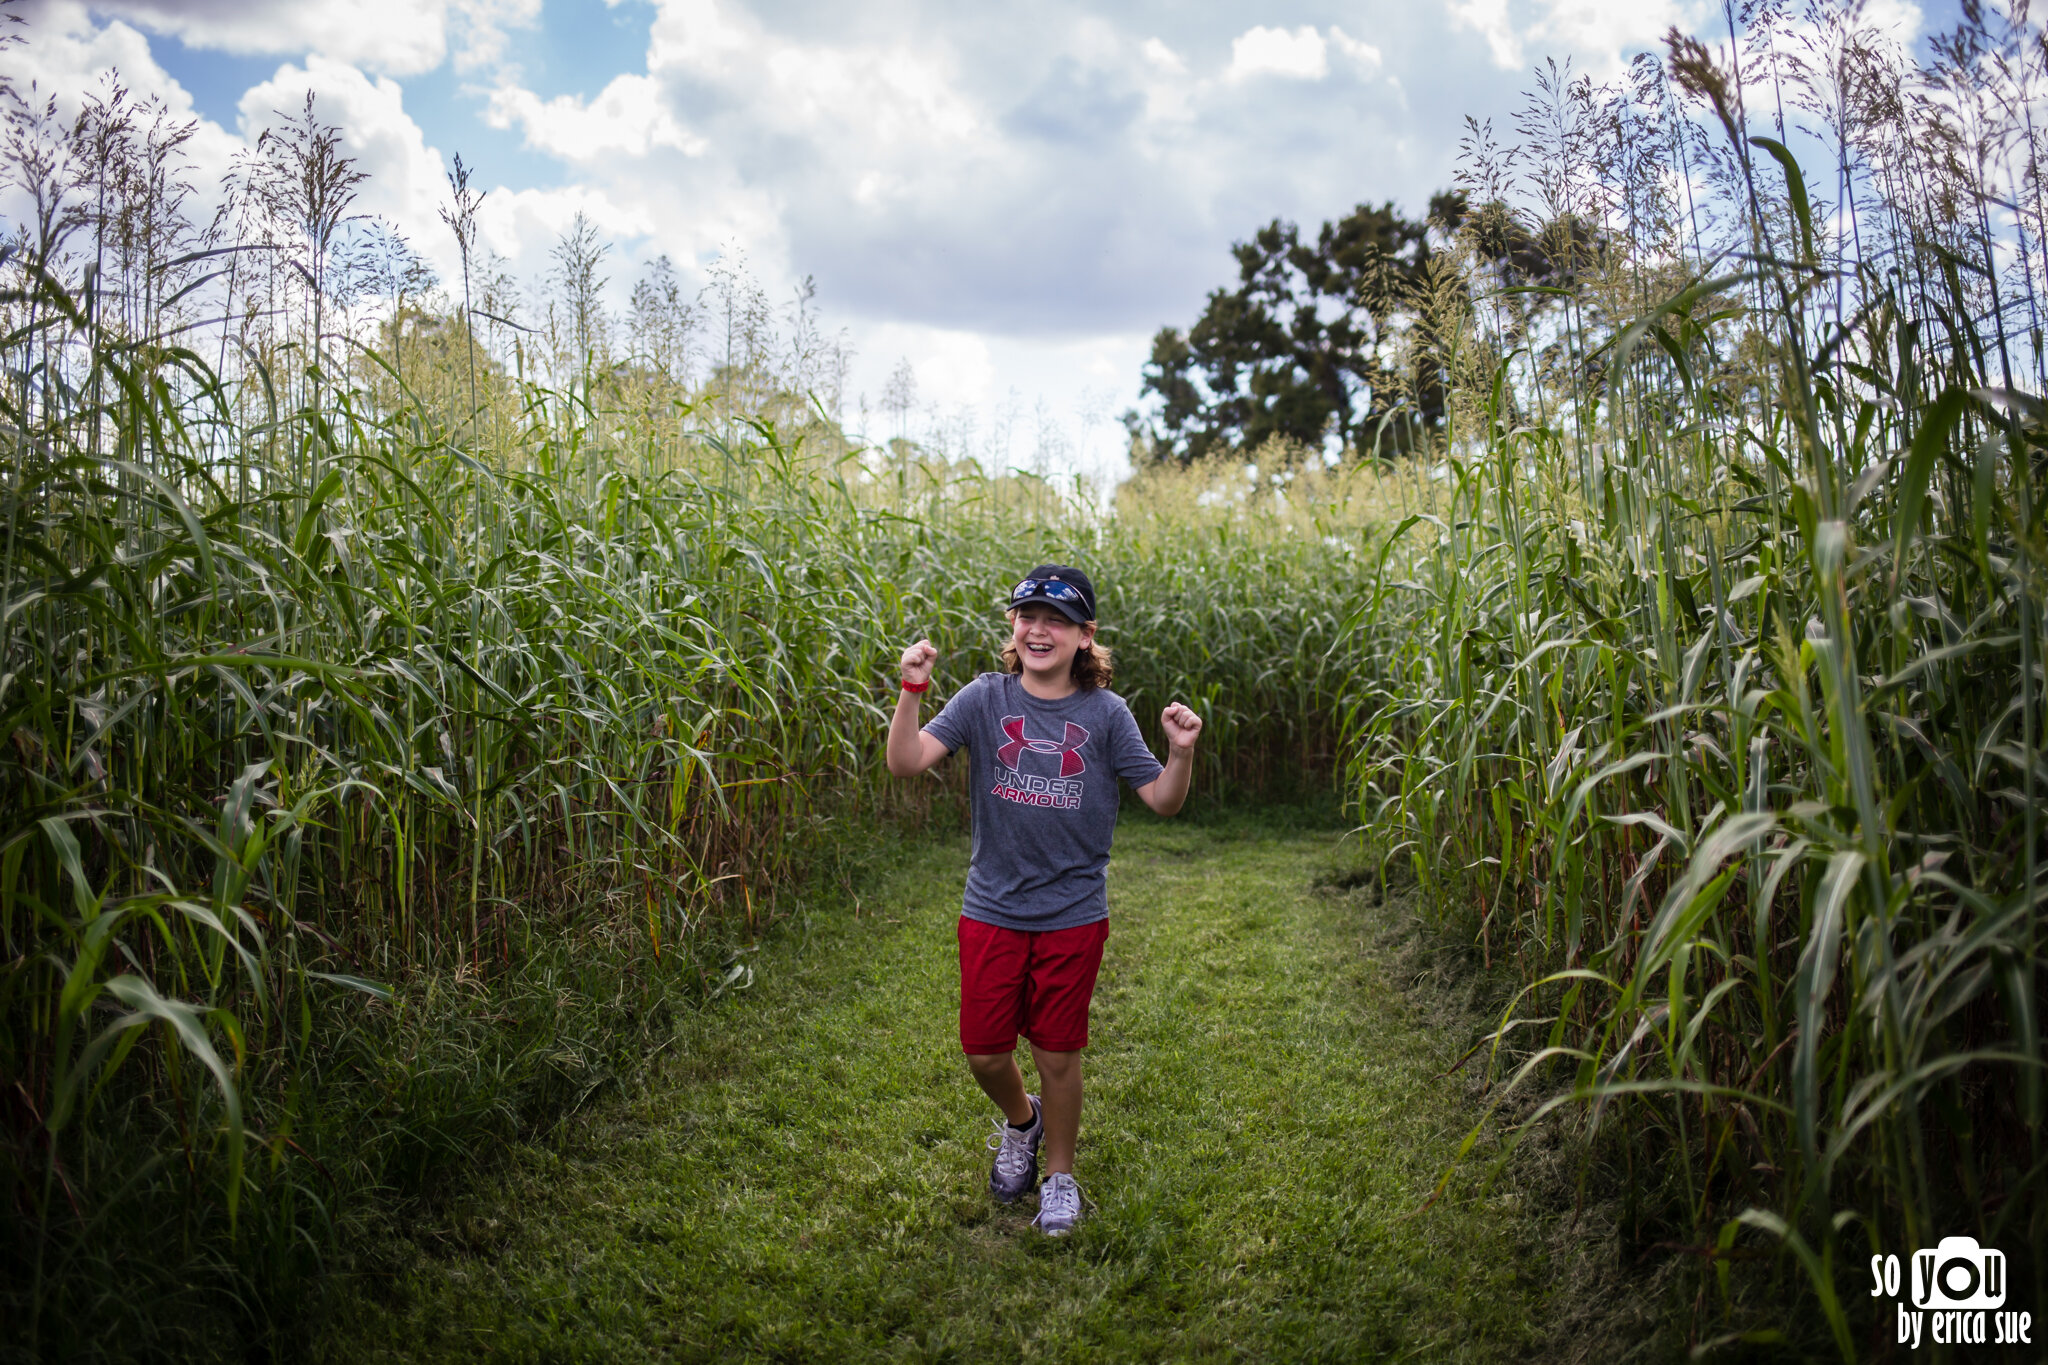 so-you-by-erica-sue-disney-photography-family-mickey-not-so-scary-partin-ranch-corn-maze-old-town-orlando-4250.jpg